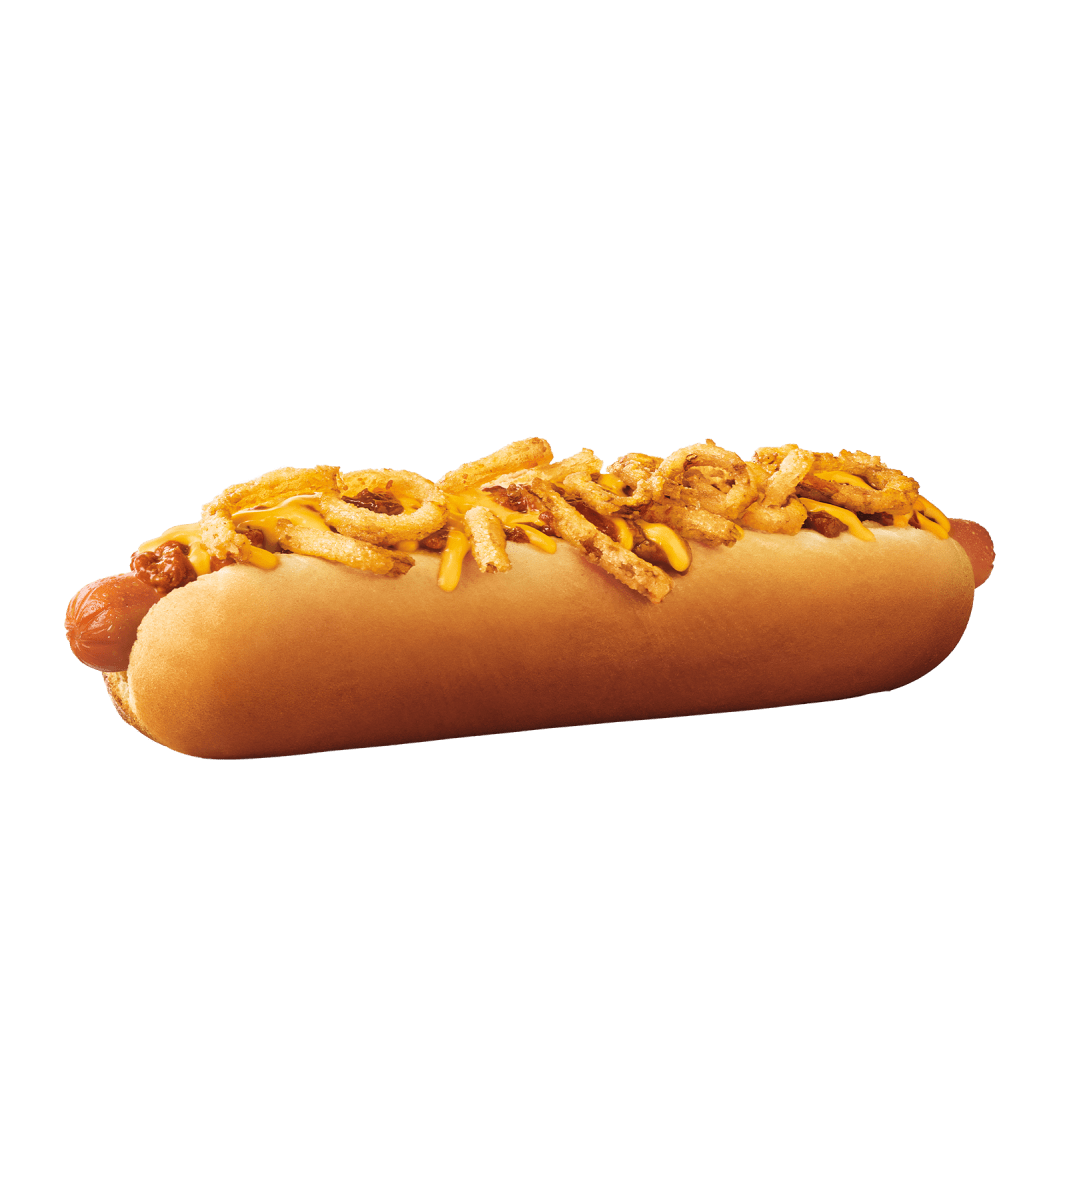 Sonic Twisted Texan Footlong Chili Cheese Coney Nutrition Facts